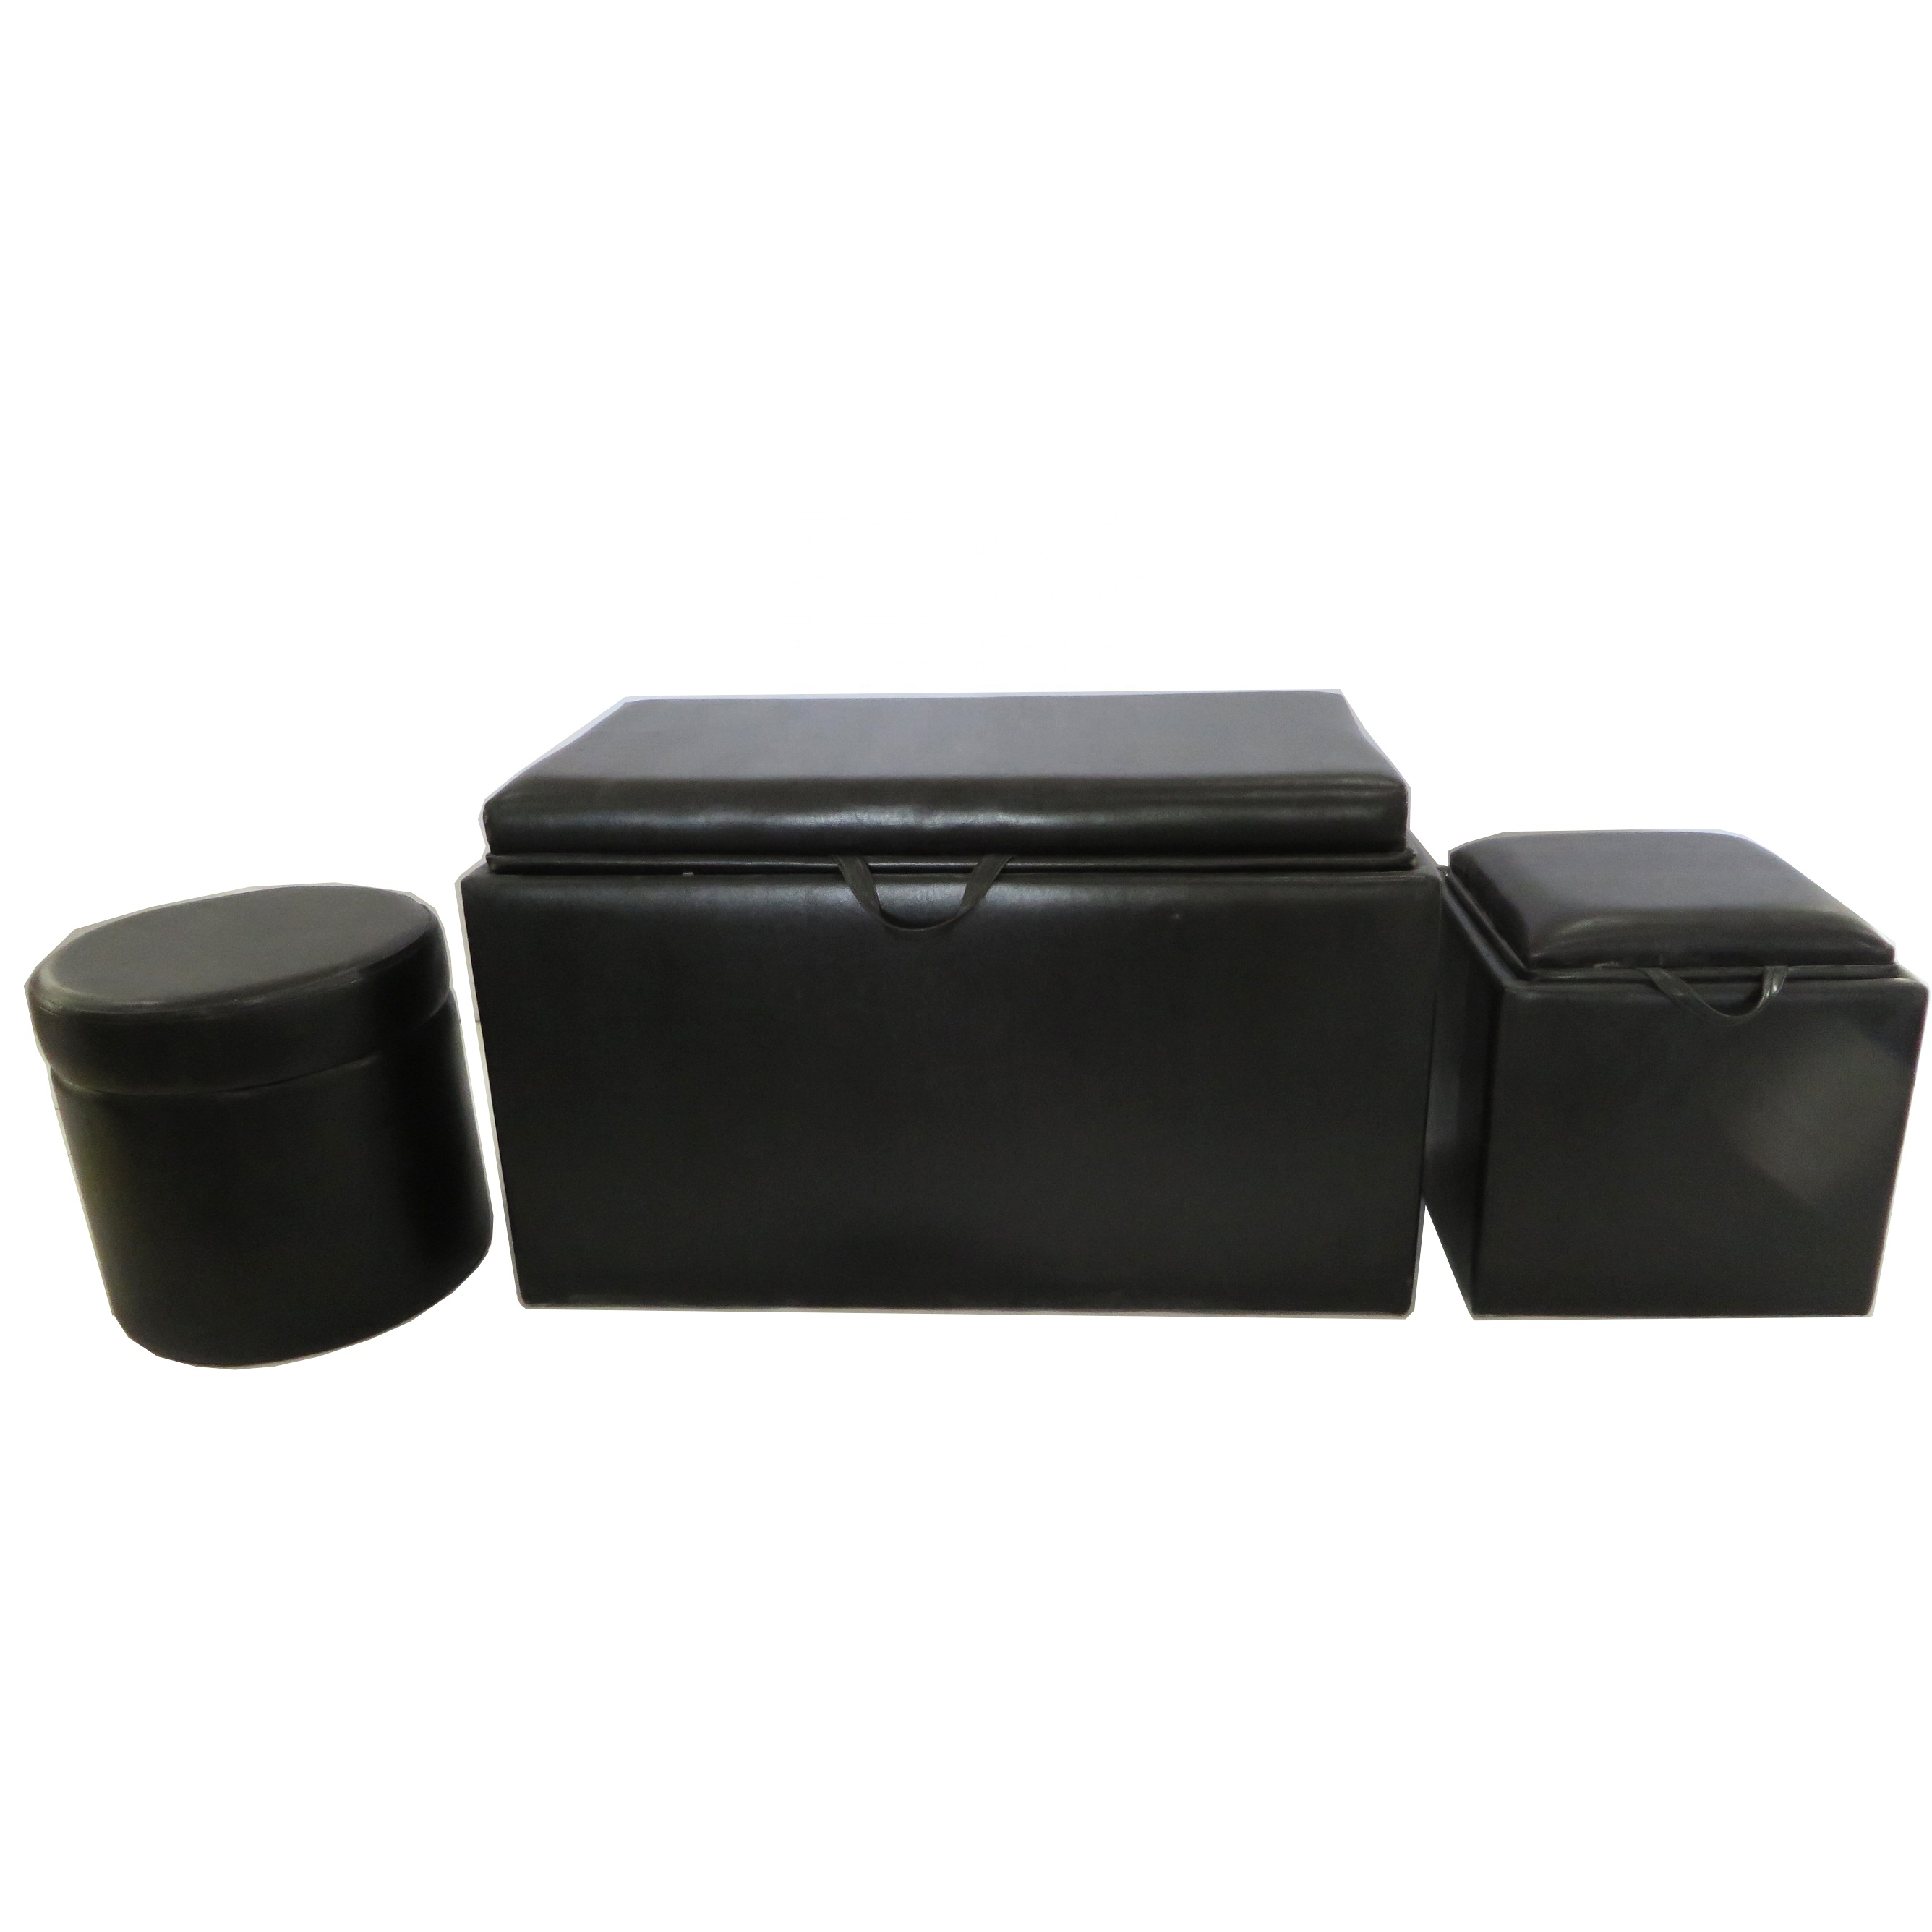 bedroom furniture black leather storage wooden bench seat with one bench and two round ottoman buy bench seat wooden bench seat storage wooden bench seat product on alibaba com